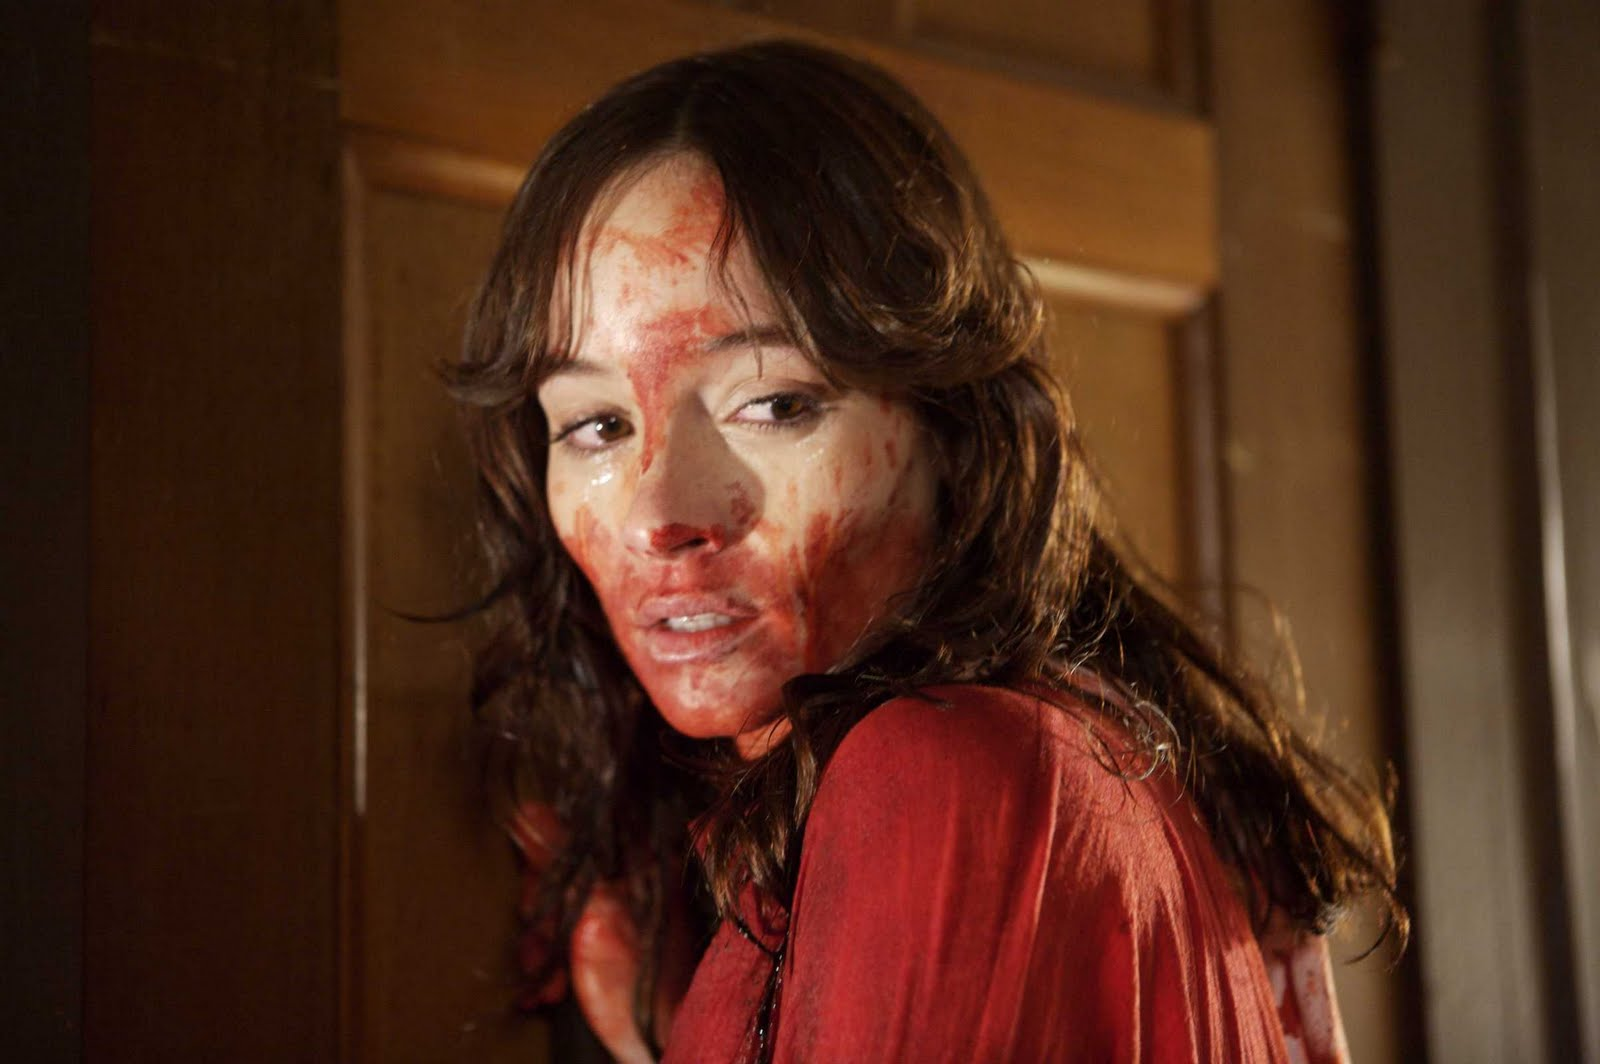 Mickey Keating Begins Filming On Southern Gothic Feature Starring Jocelin Donahue - Bloody Disgusting